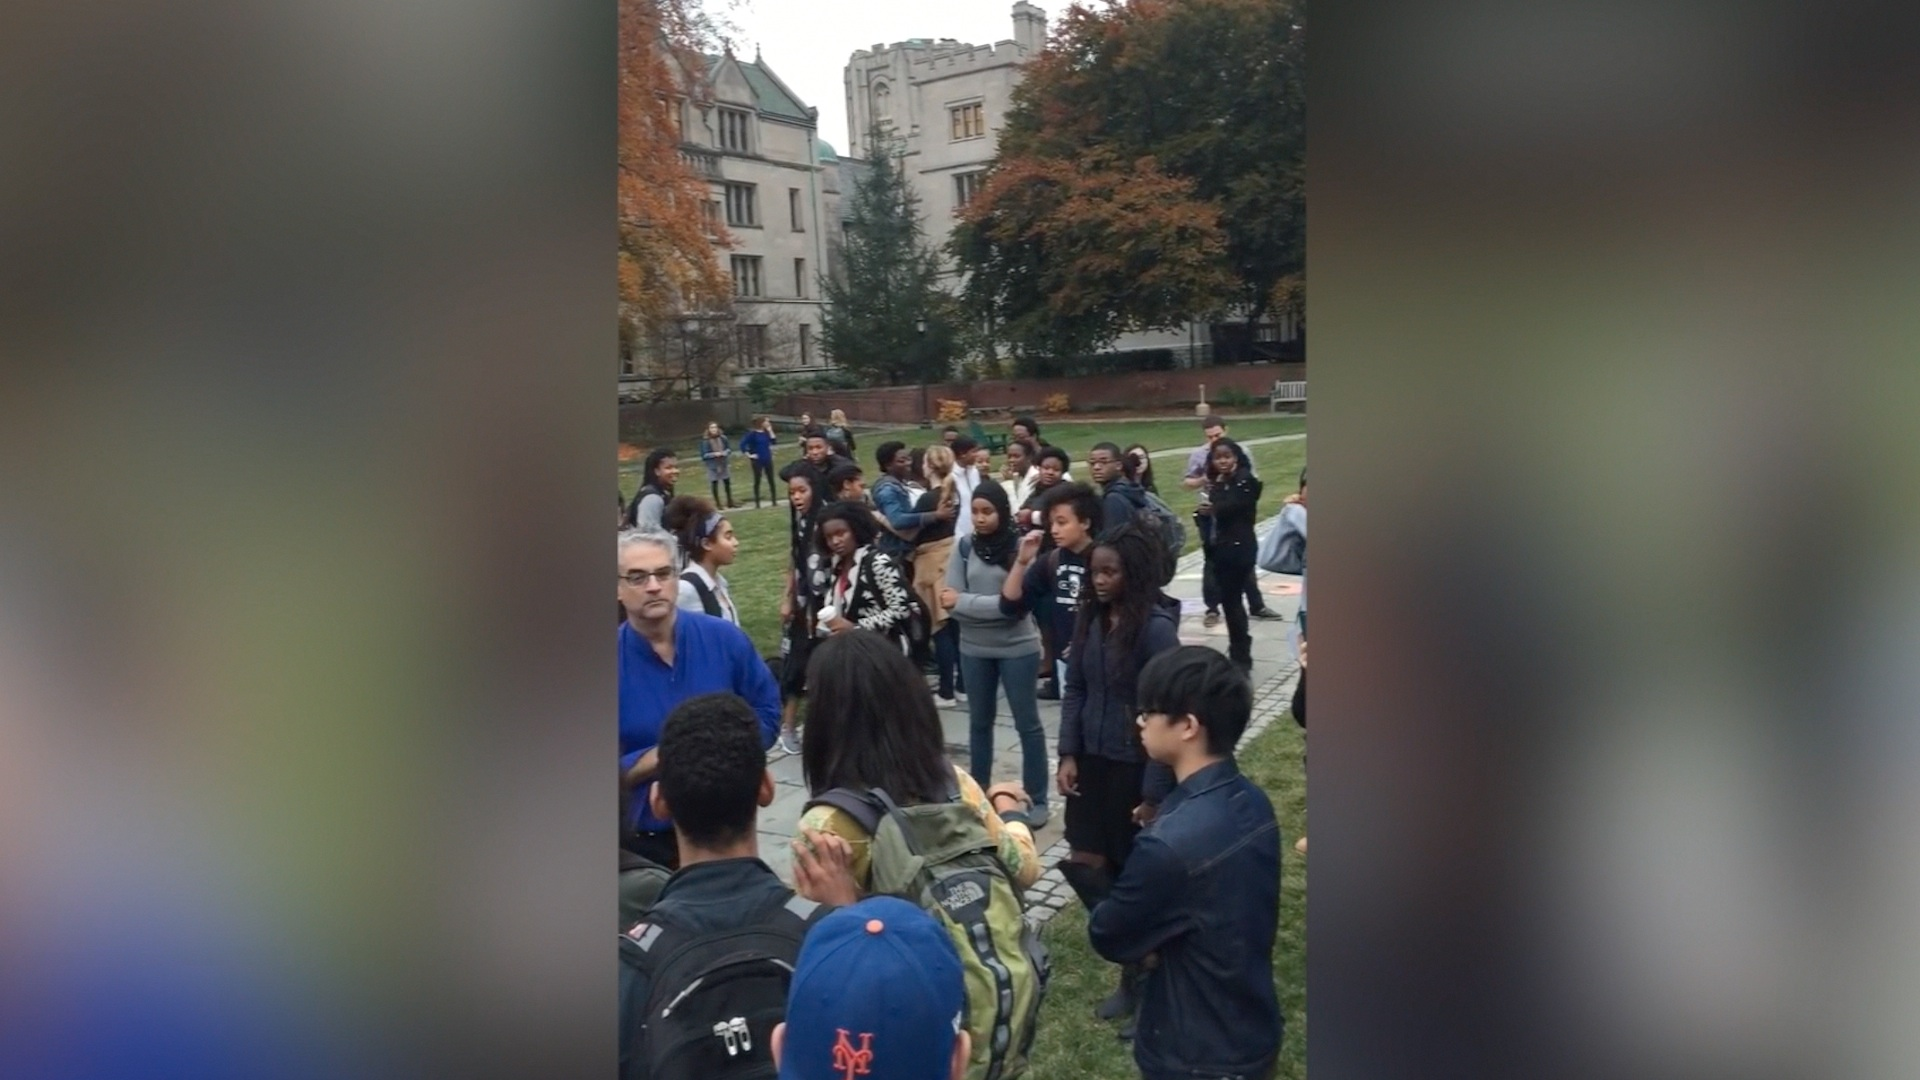 My Halloween email led to a campus firestorm — and a troubling lesson about self-censorship